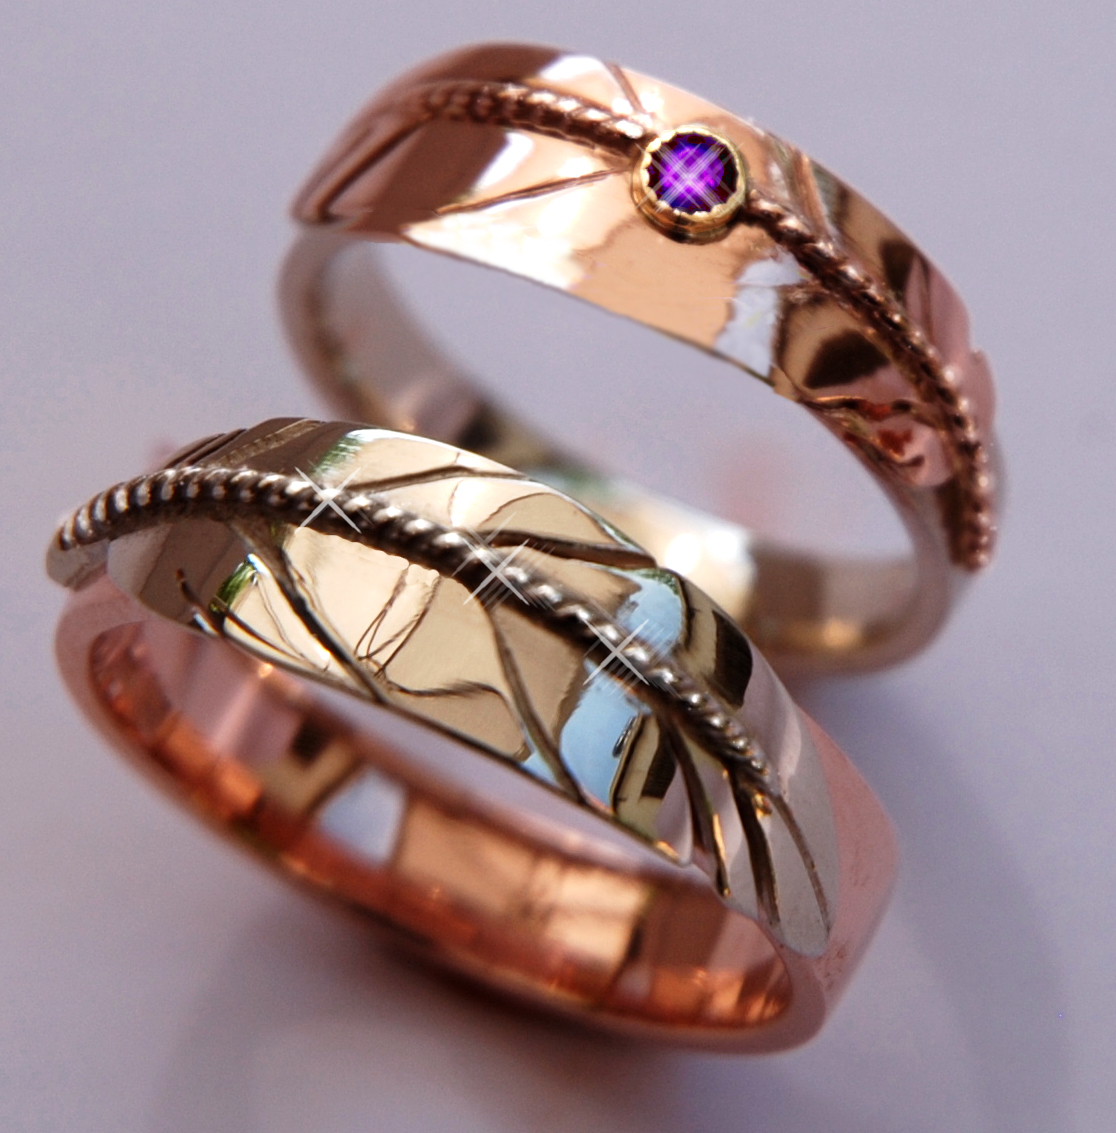 jewellery htm dream zoom marl man rings have i en a ring